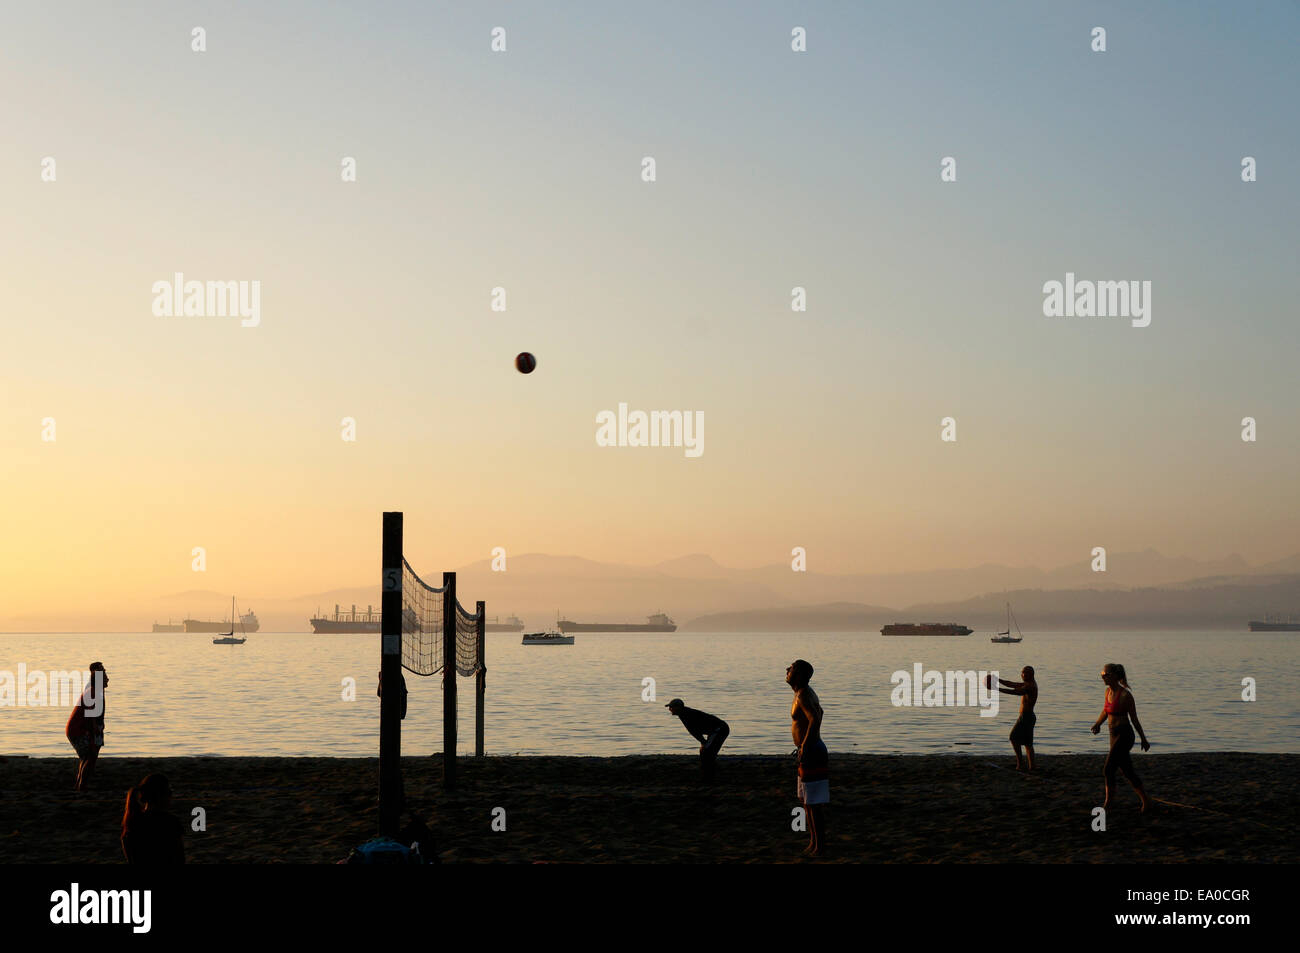 People playing beach volleyball at sunset, Kitsilano Beach, Vancouver, British Columbia, Canada Stock Photo